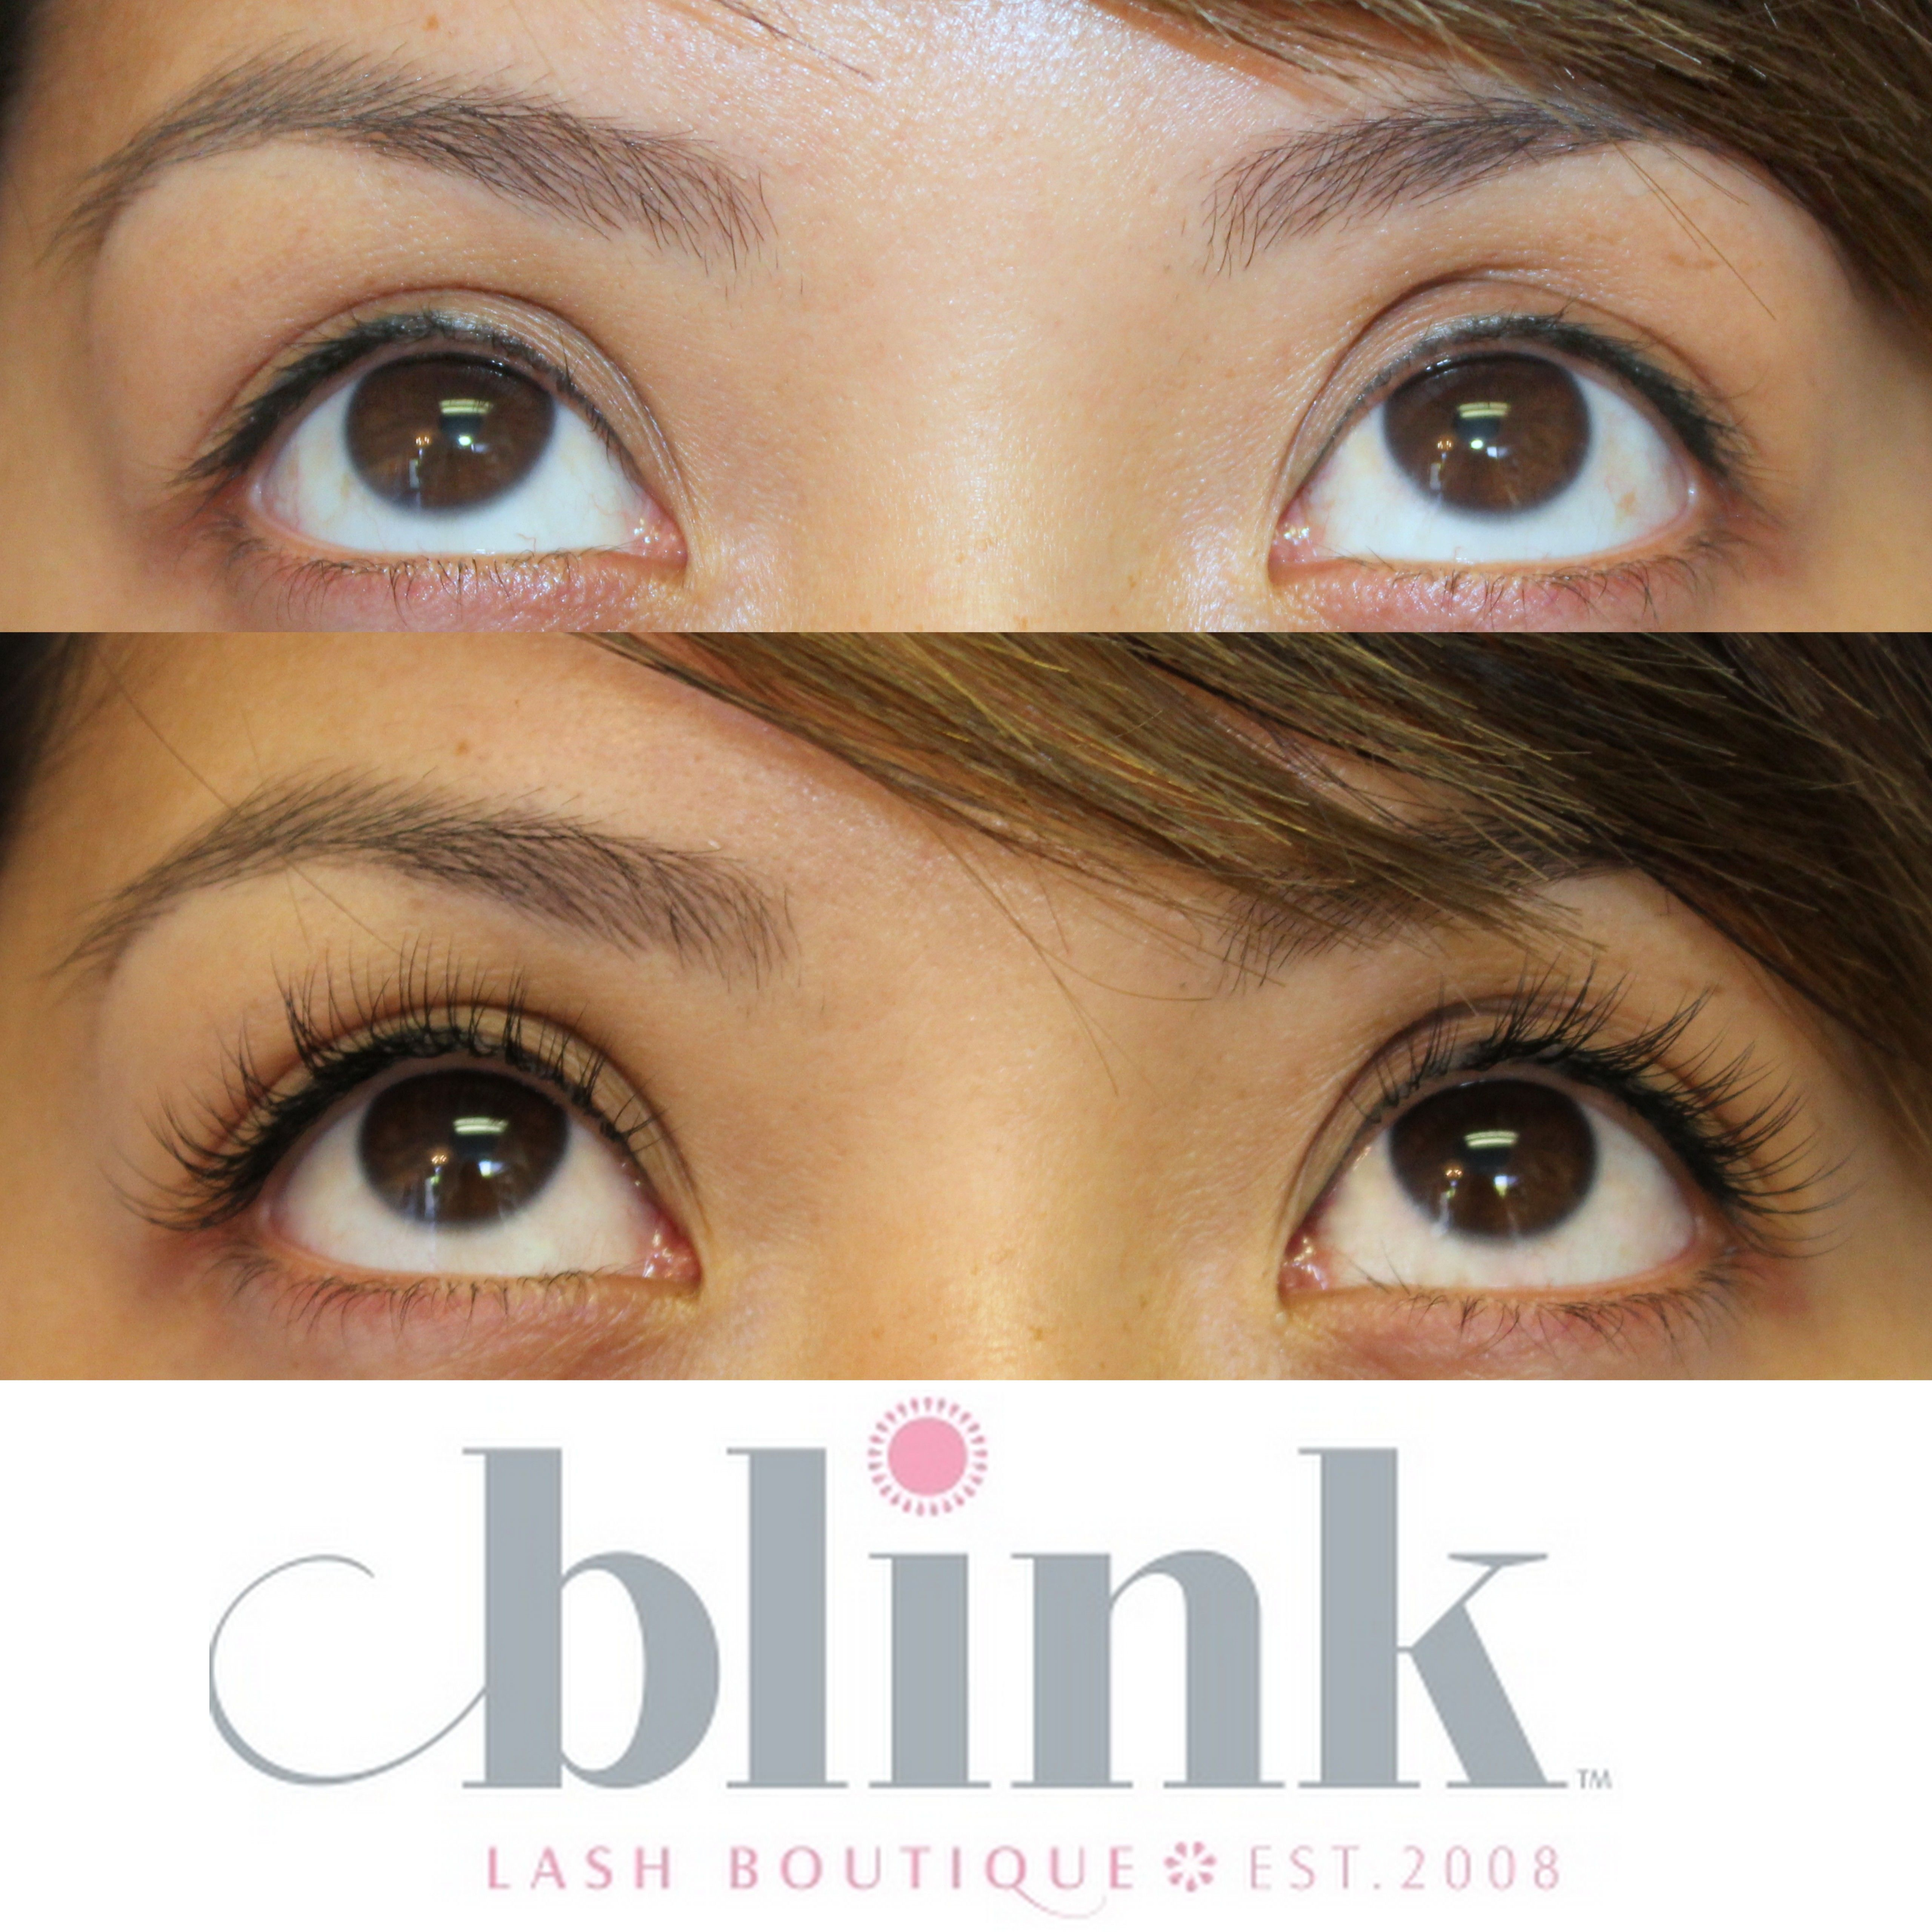 72caf325dfd Beautiful lash extensions from Blink Lash Boutique that enhance natural  beauty!